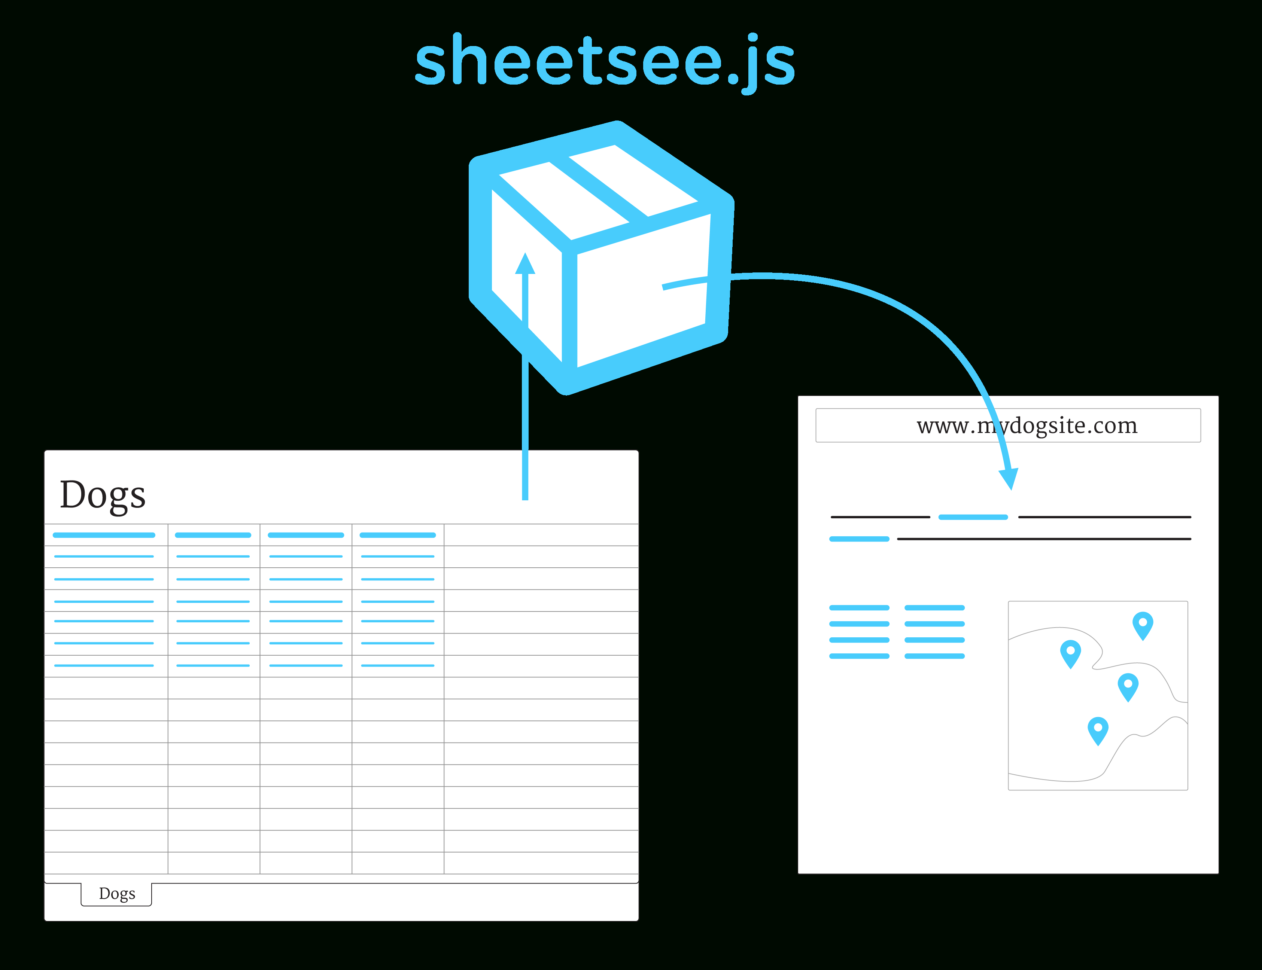 Javascript Spreadsheet Library In Sheetsee.js